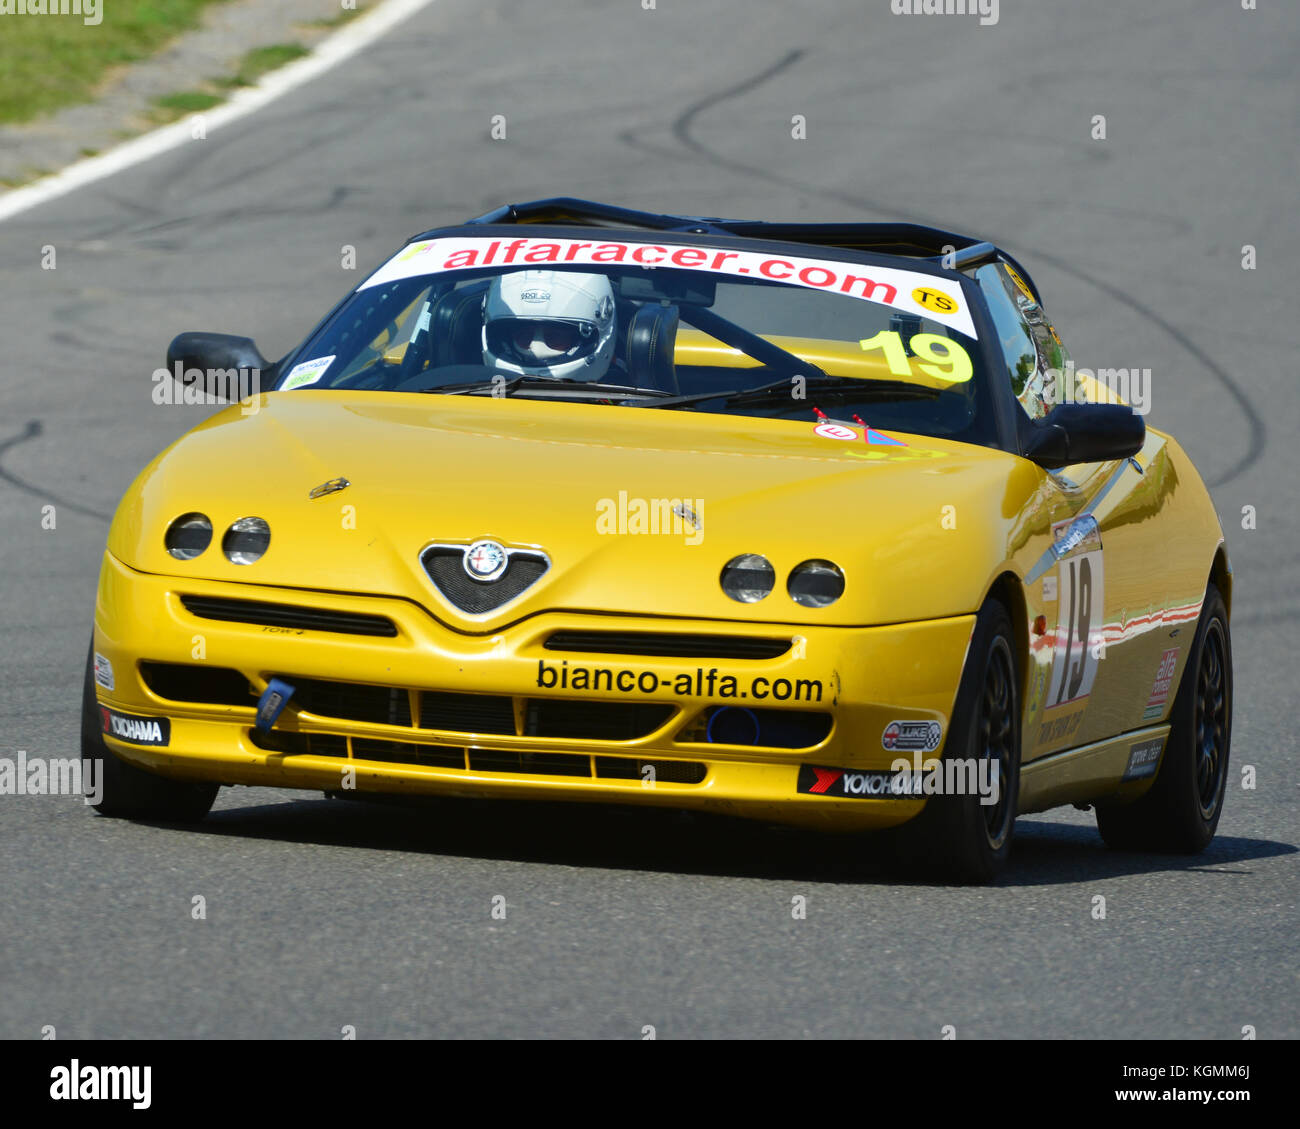 Alfa Romeo Spider Stock Photos & Alfa Romeo Spider Stock